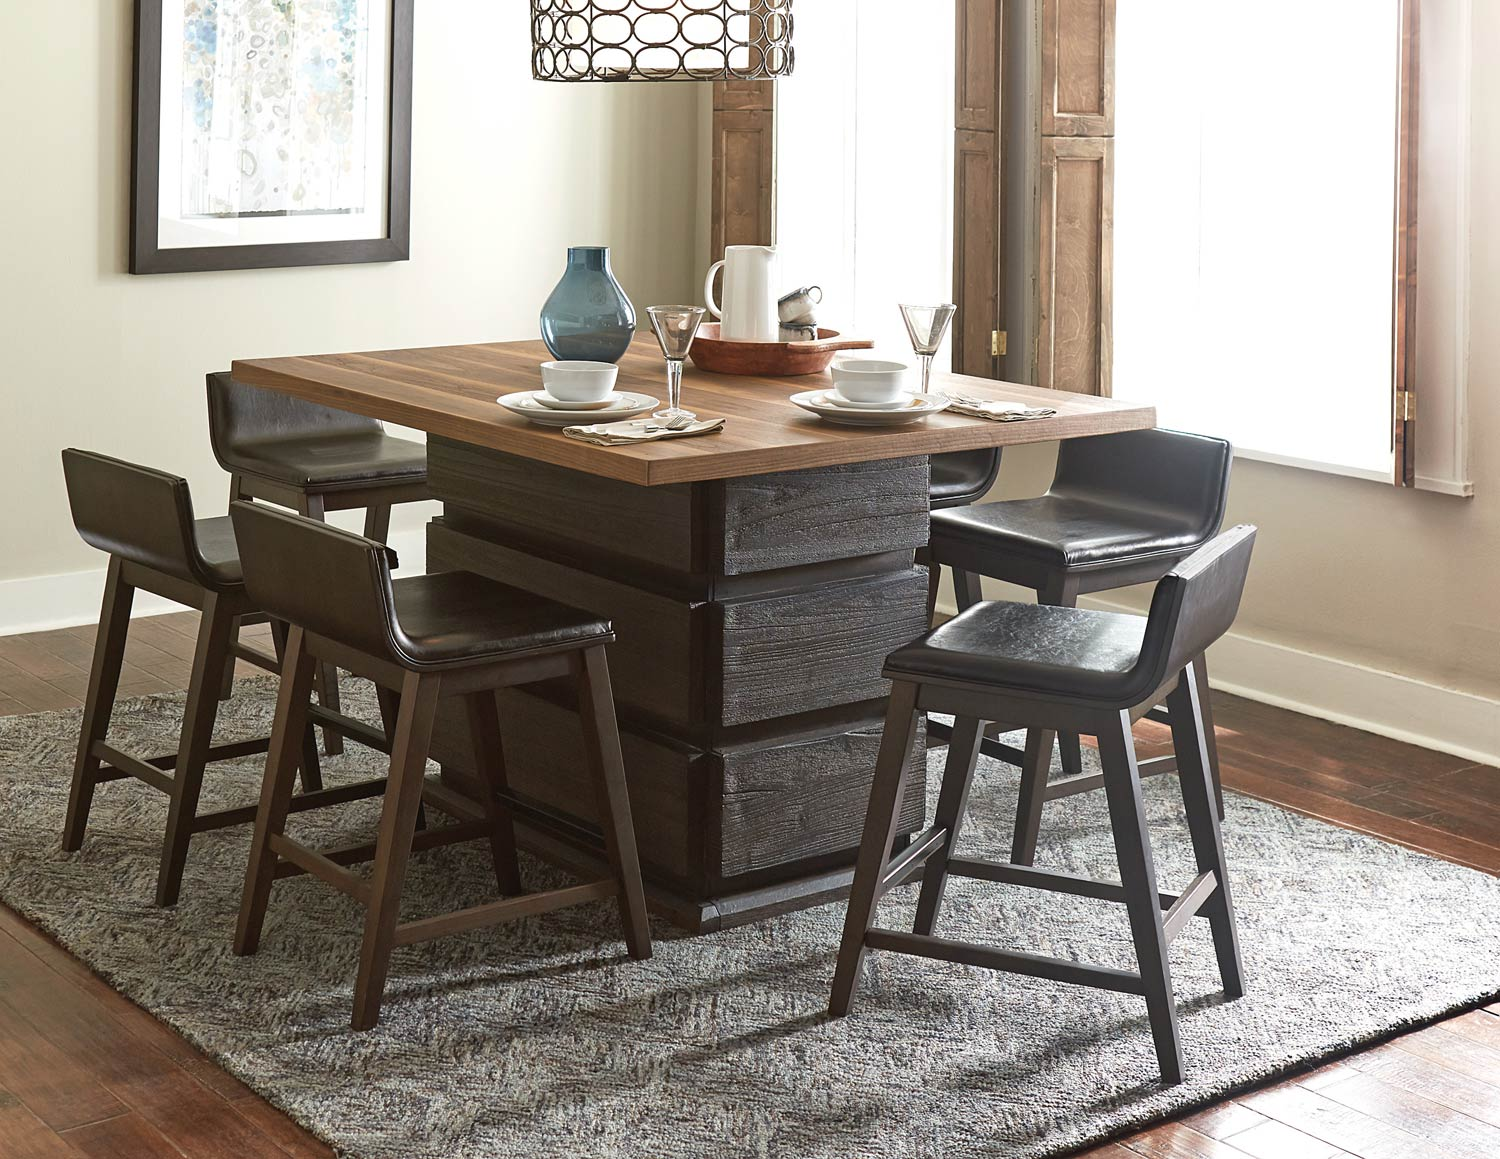 Homelegance Rochelle Counter Height Dining Set - Dark Brown/Natural